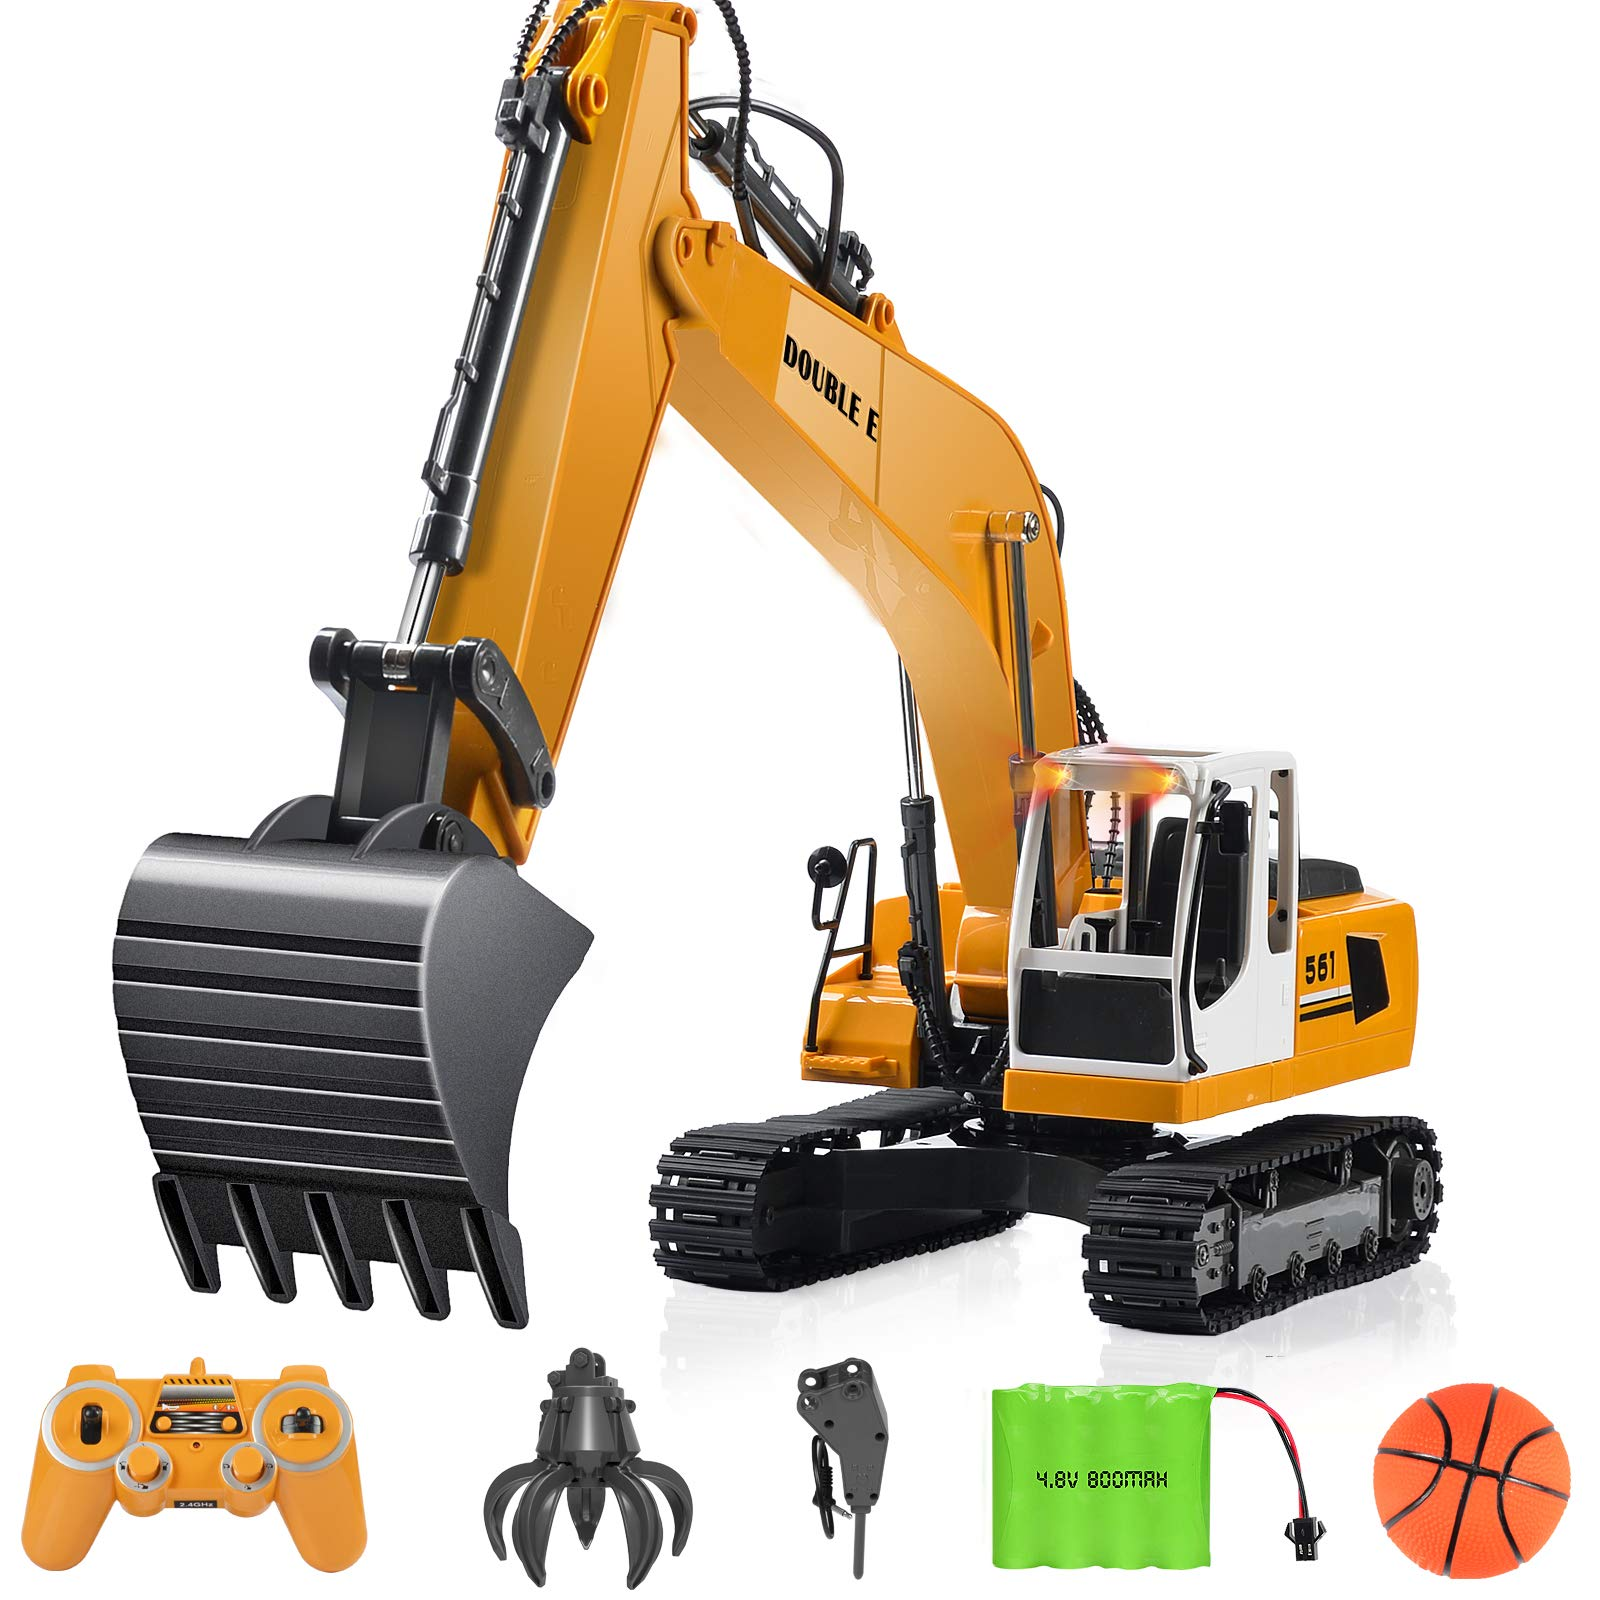 Remote Control Excavator Toy 1//14 Scale RC Excavator Full Functional Construction Vehicles 22 Channel Rechargeable RC Truck with Metal Shovel and Lights Sounds